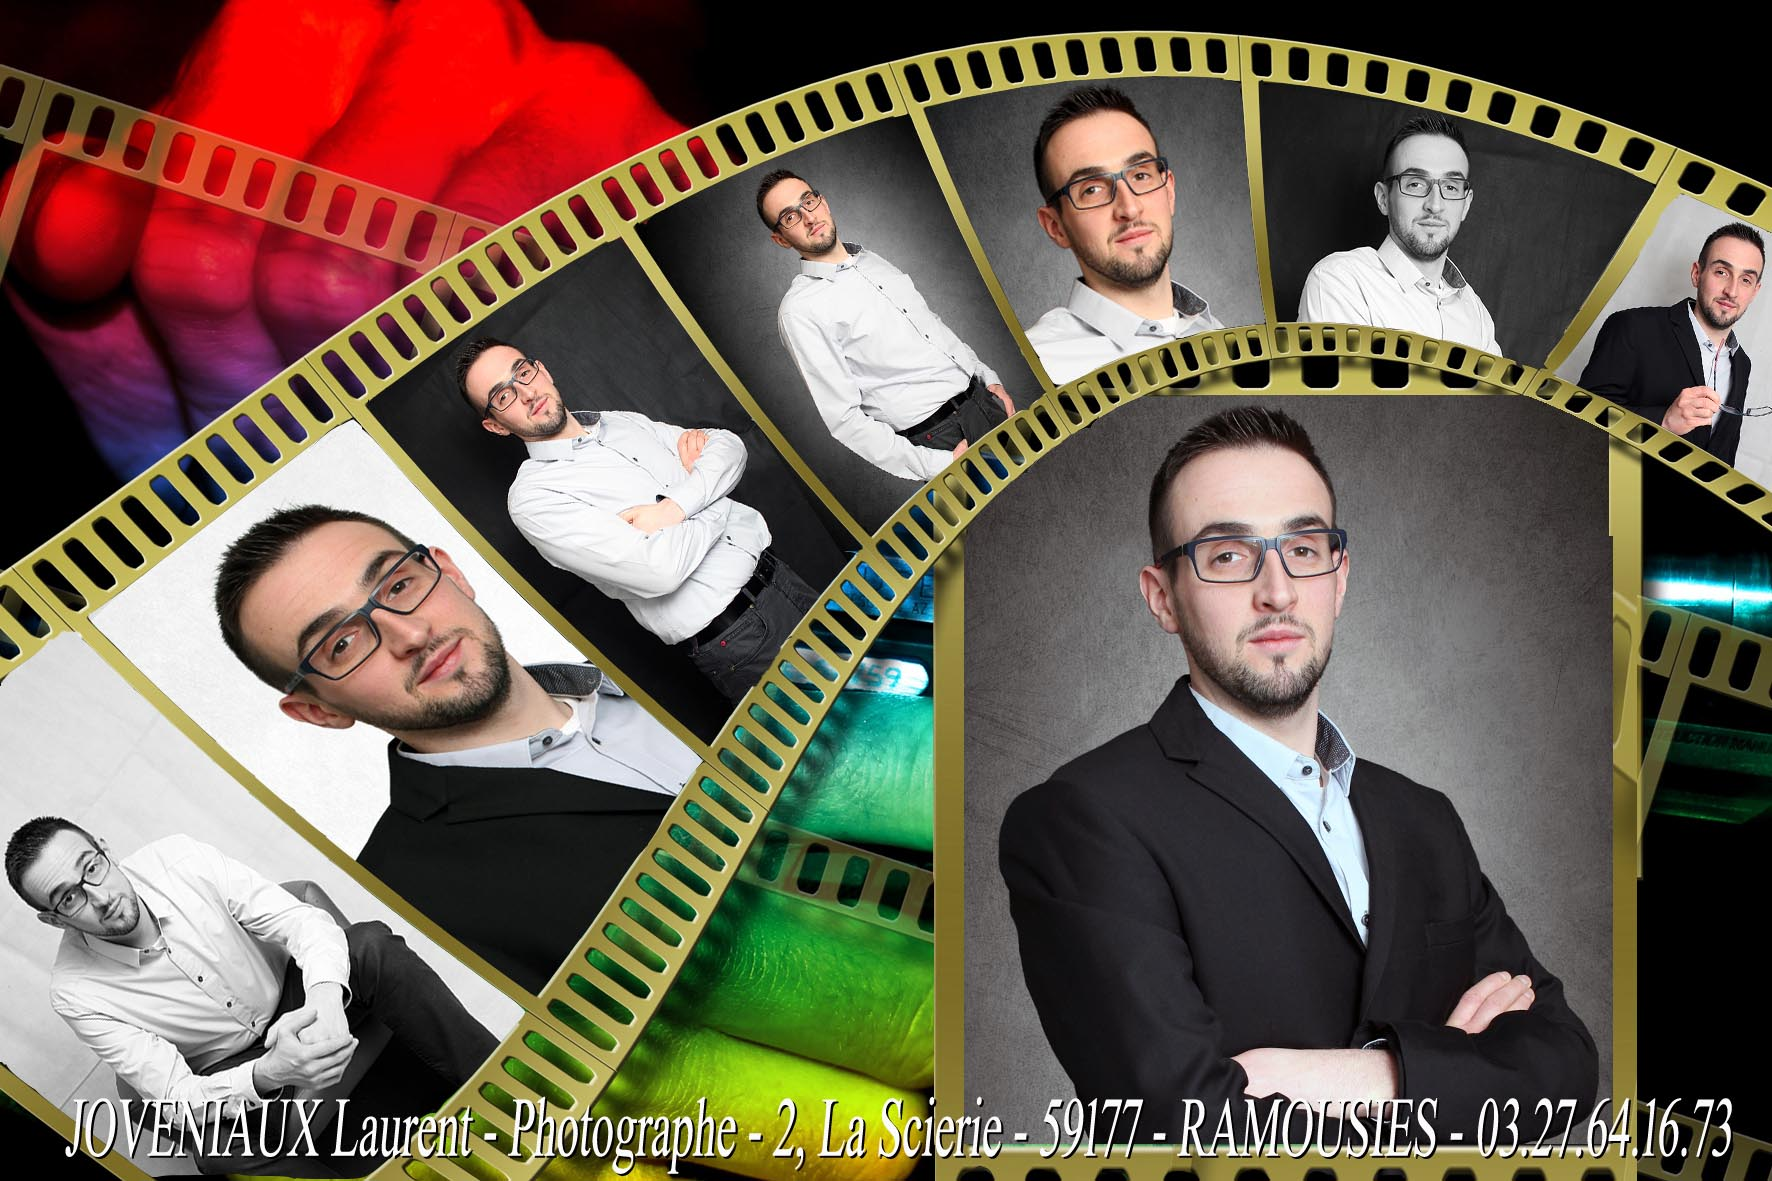 Photographe de portrait